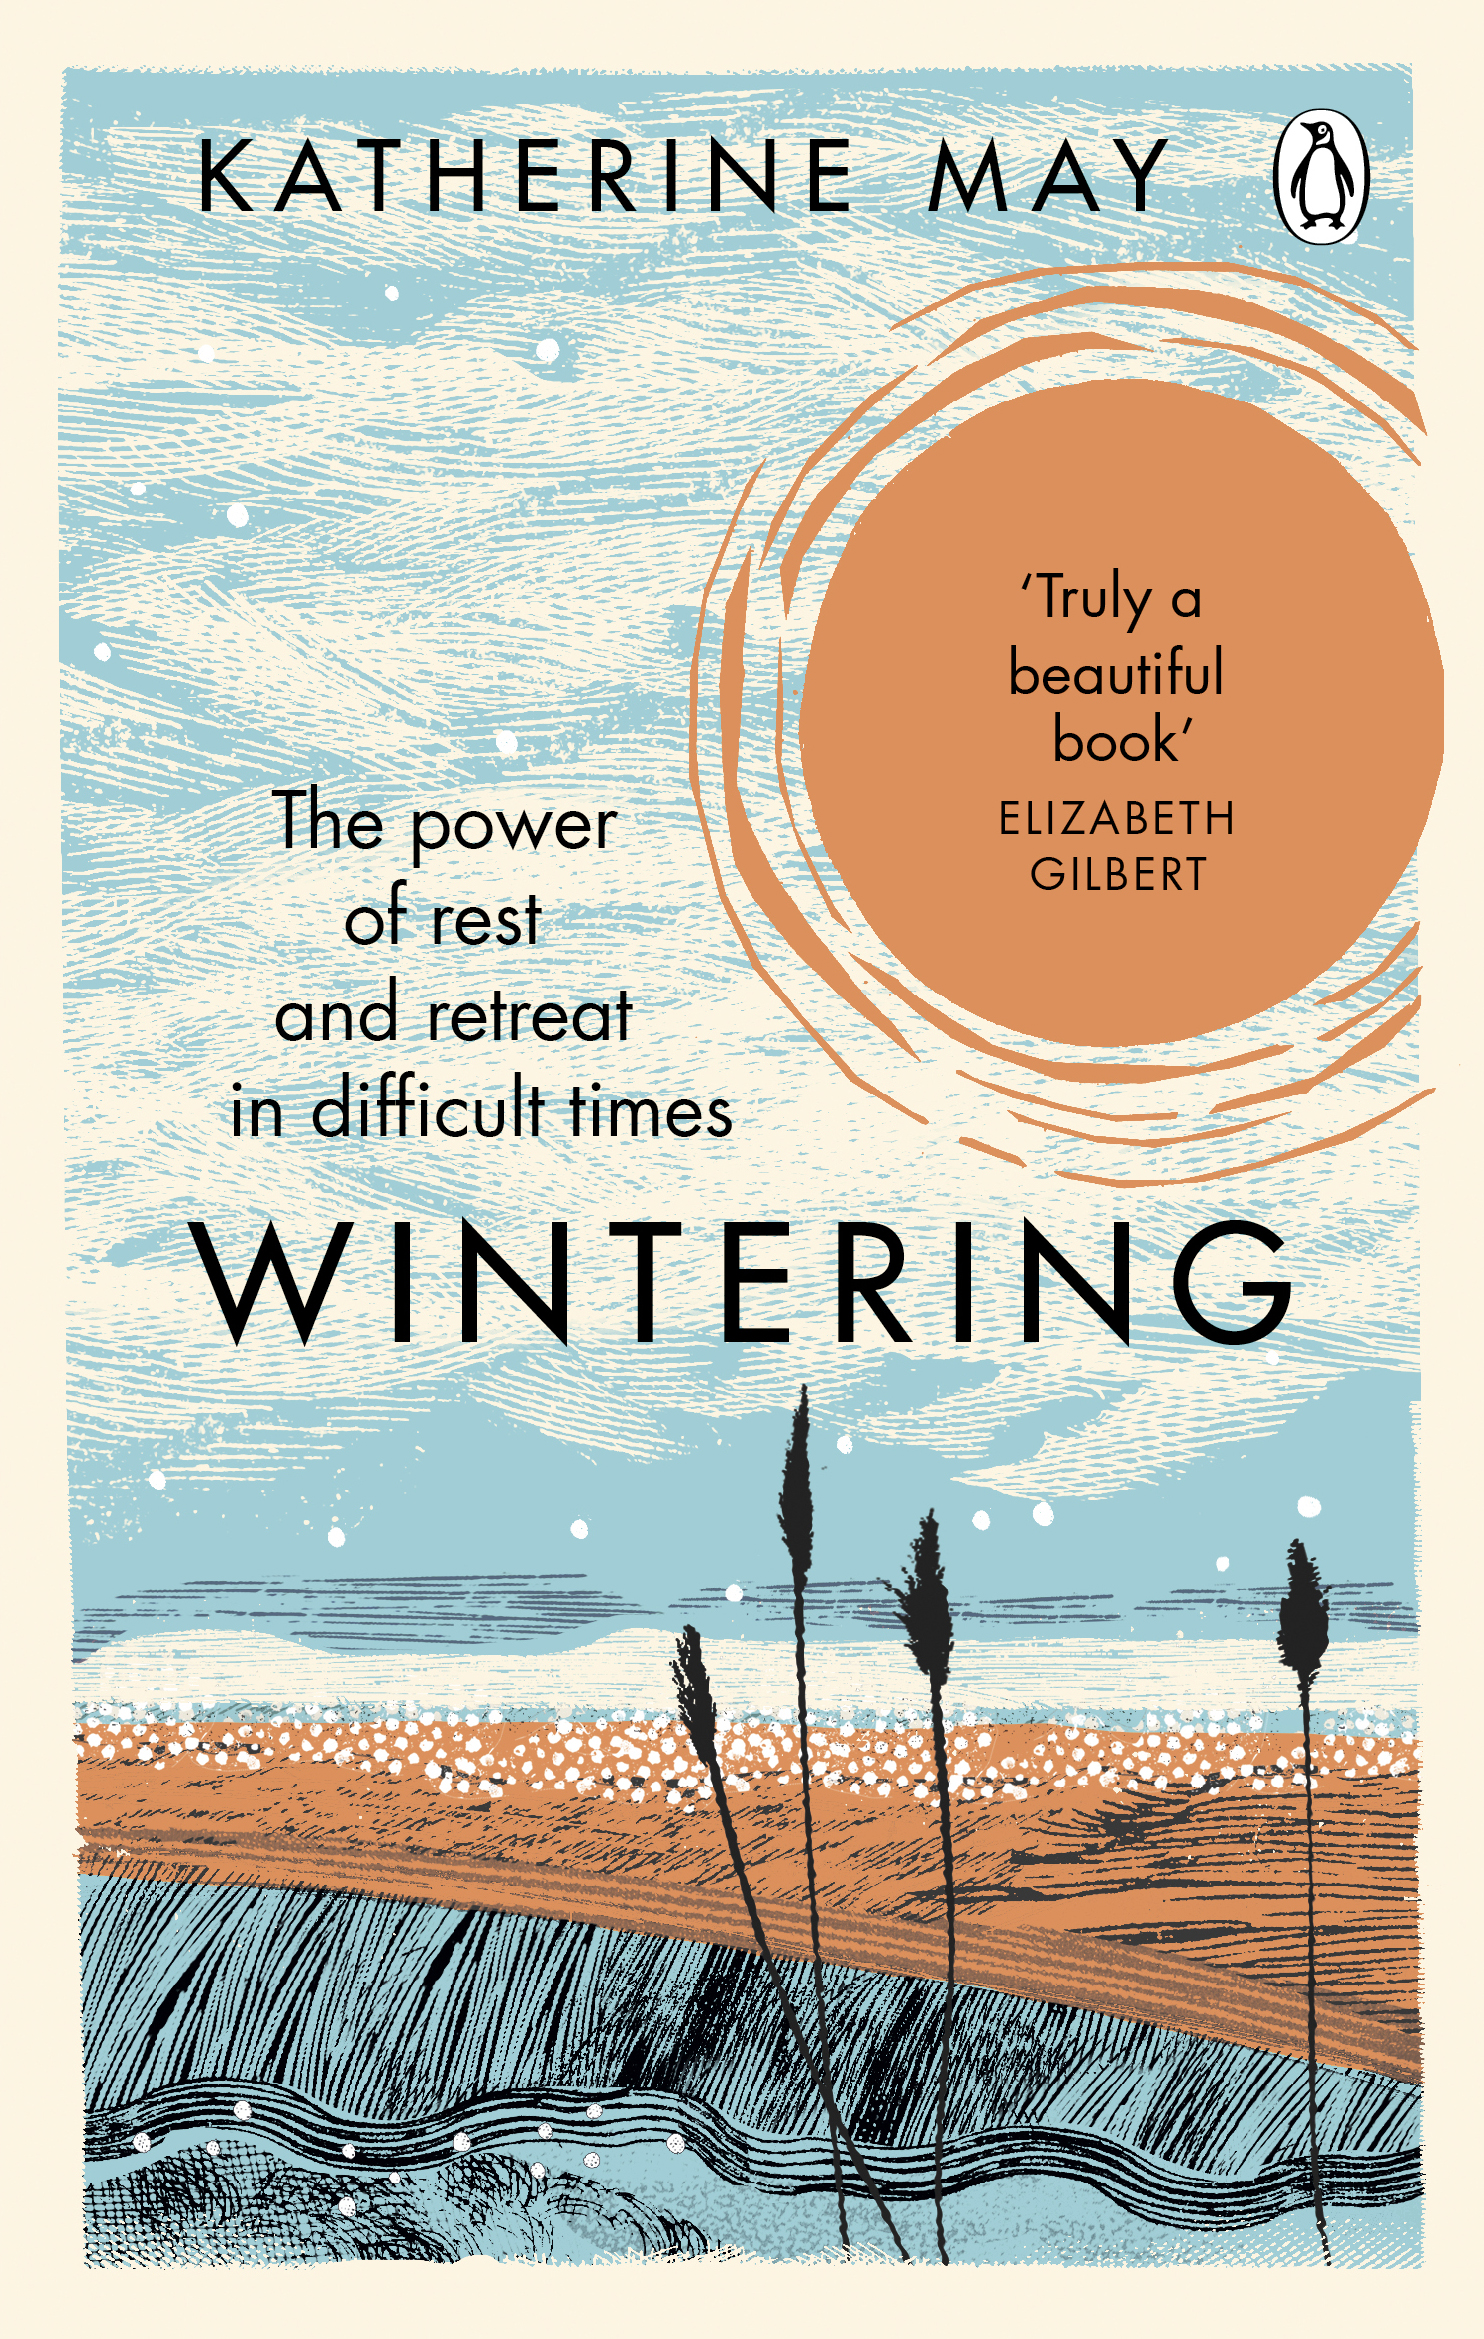 Wintering - Book Cover